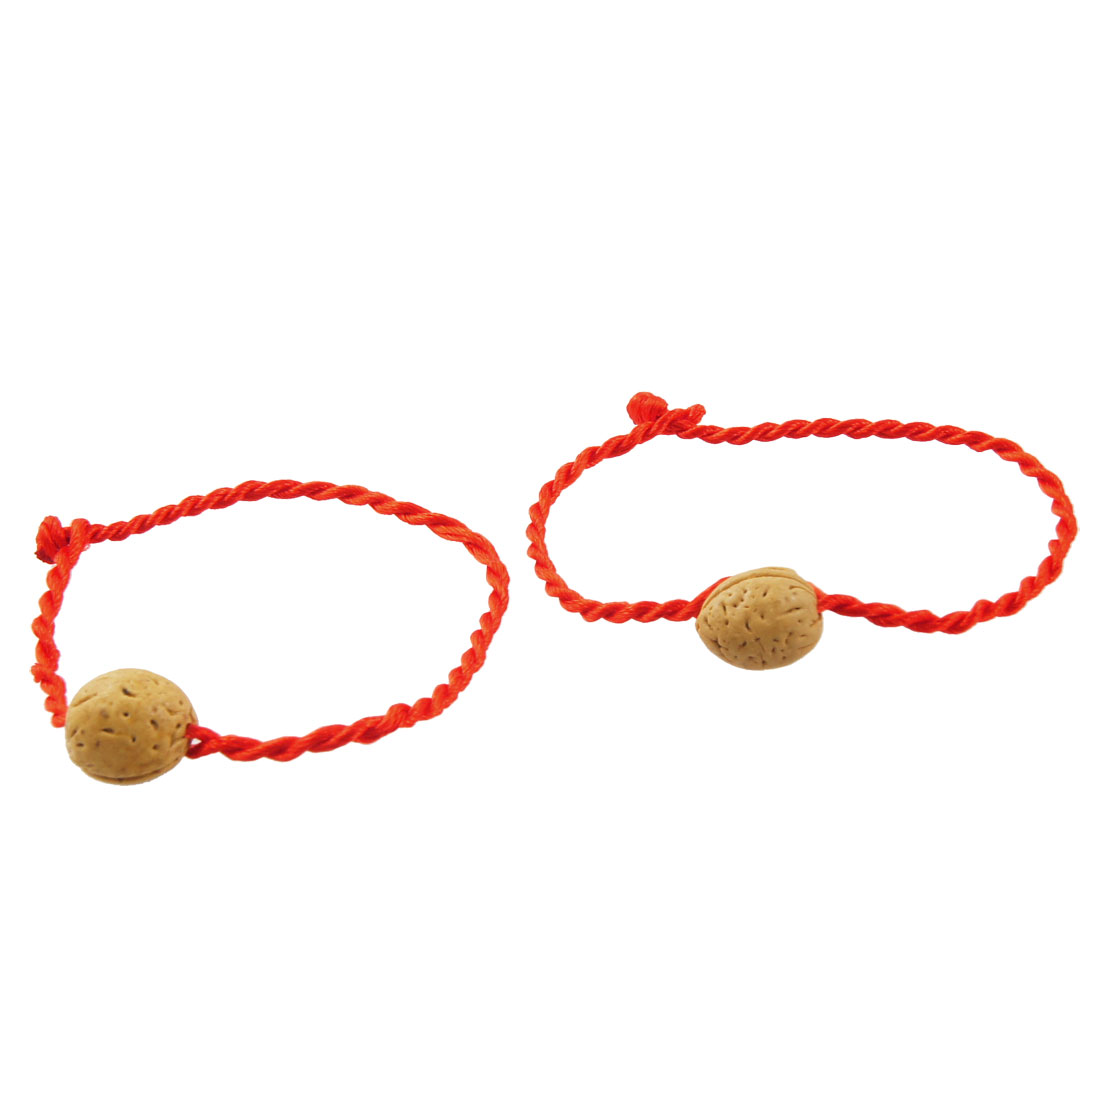 2 Pcs Peach Pit Bead Decor Red Twisted String Bangles Bracelets